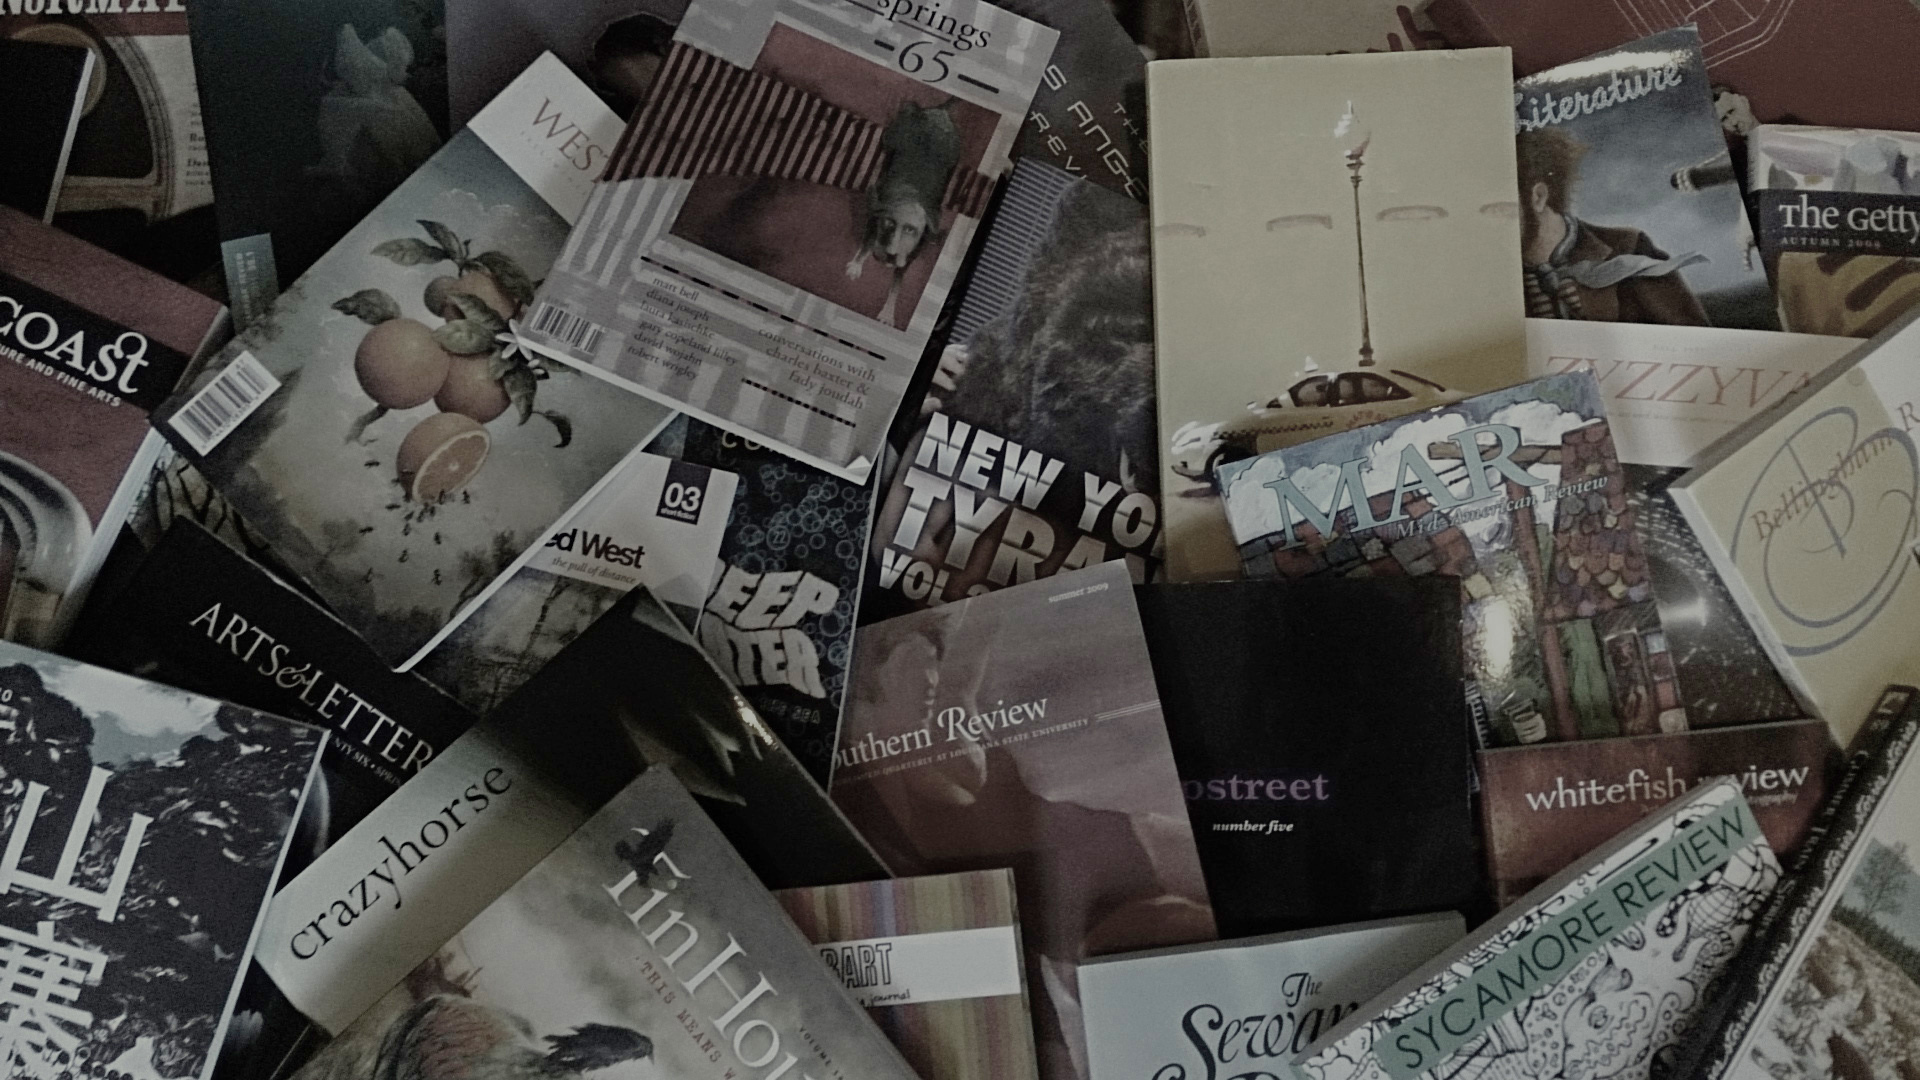 Picture of many different literary magazines sprawled and overlapping on the floor.